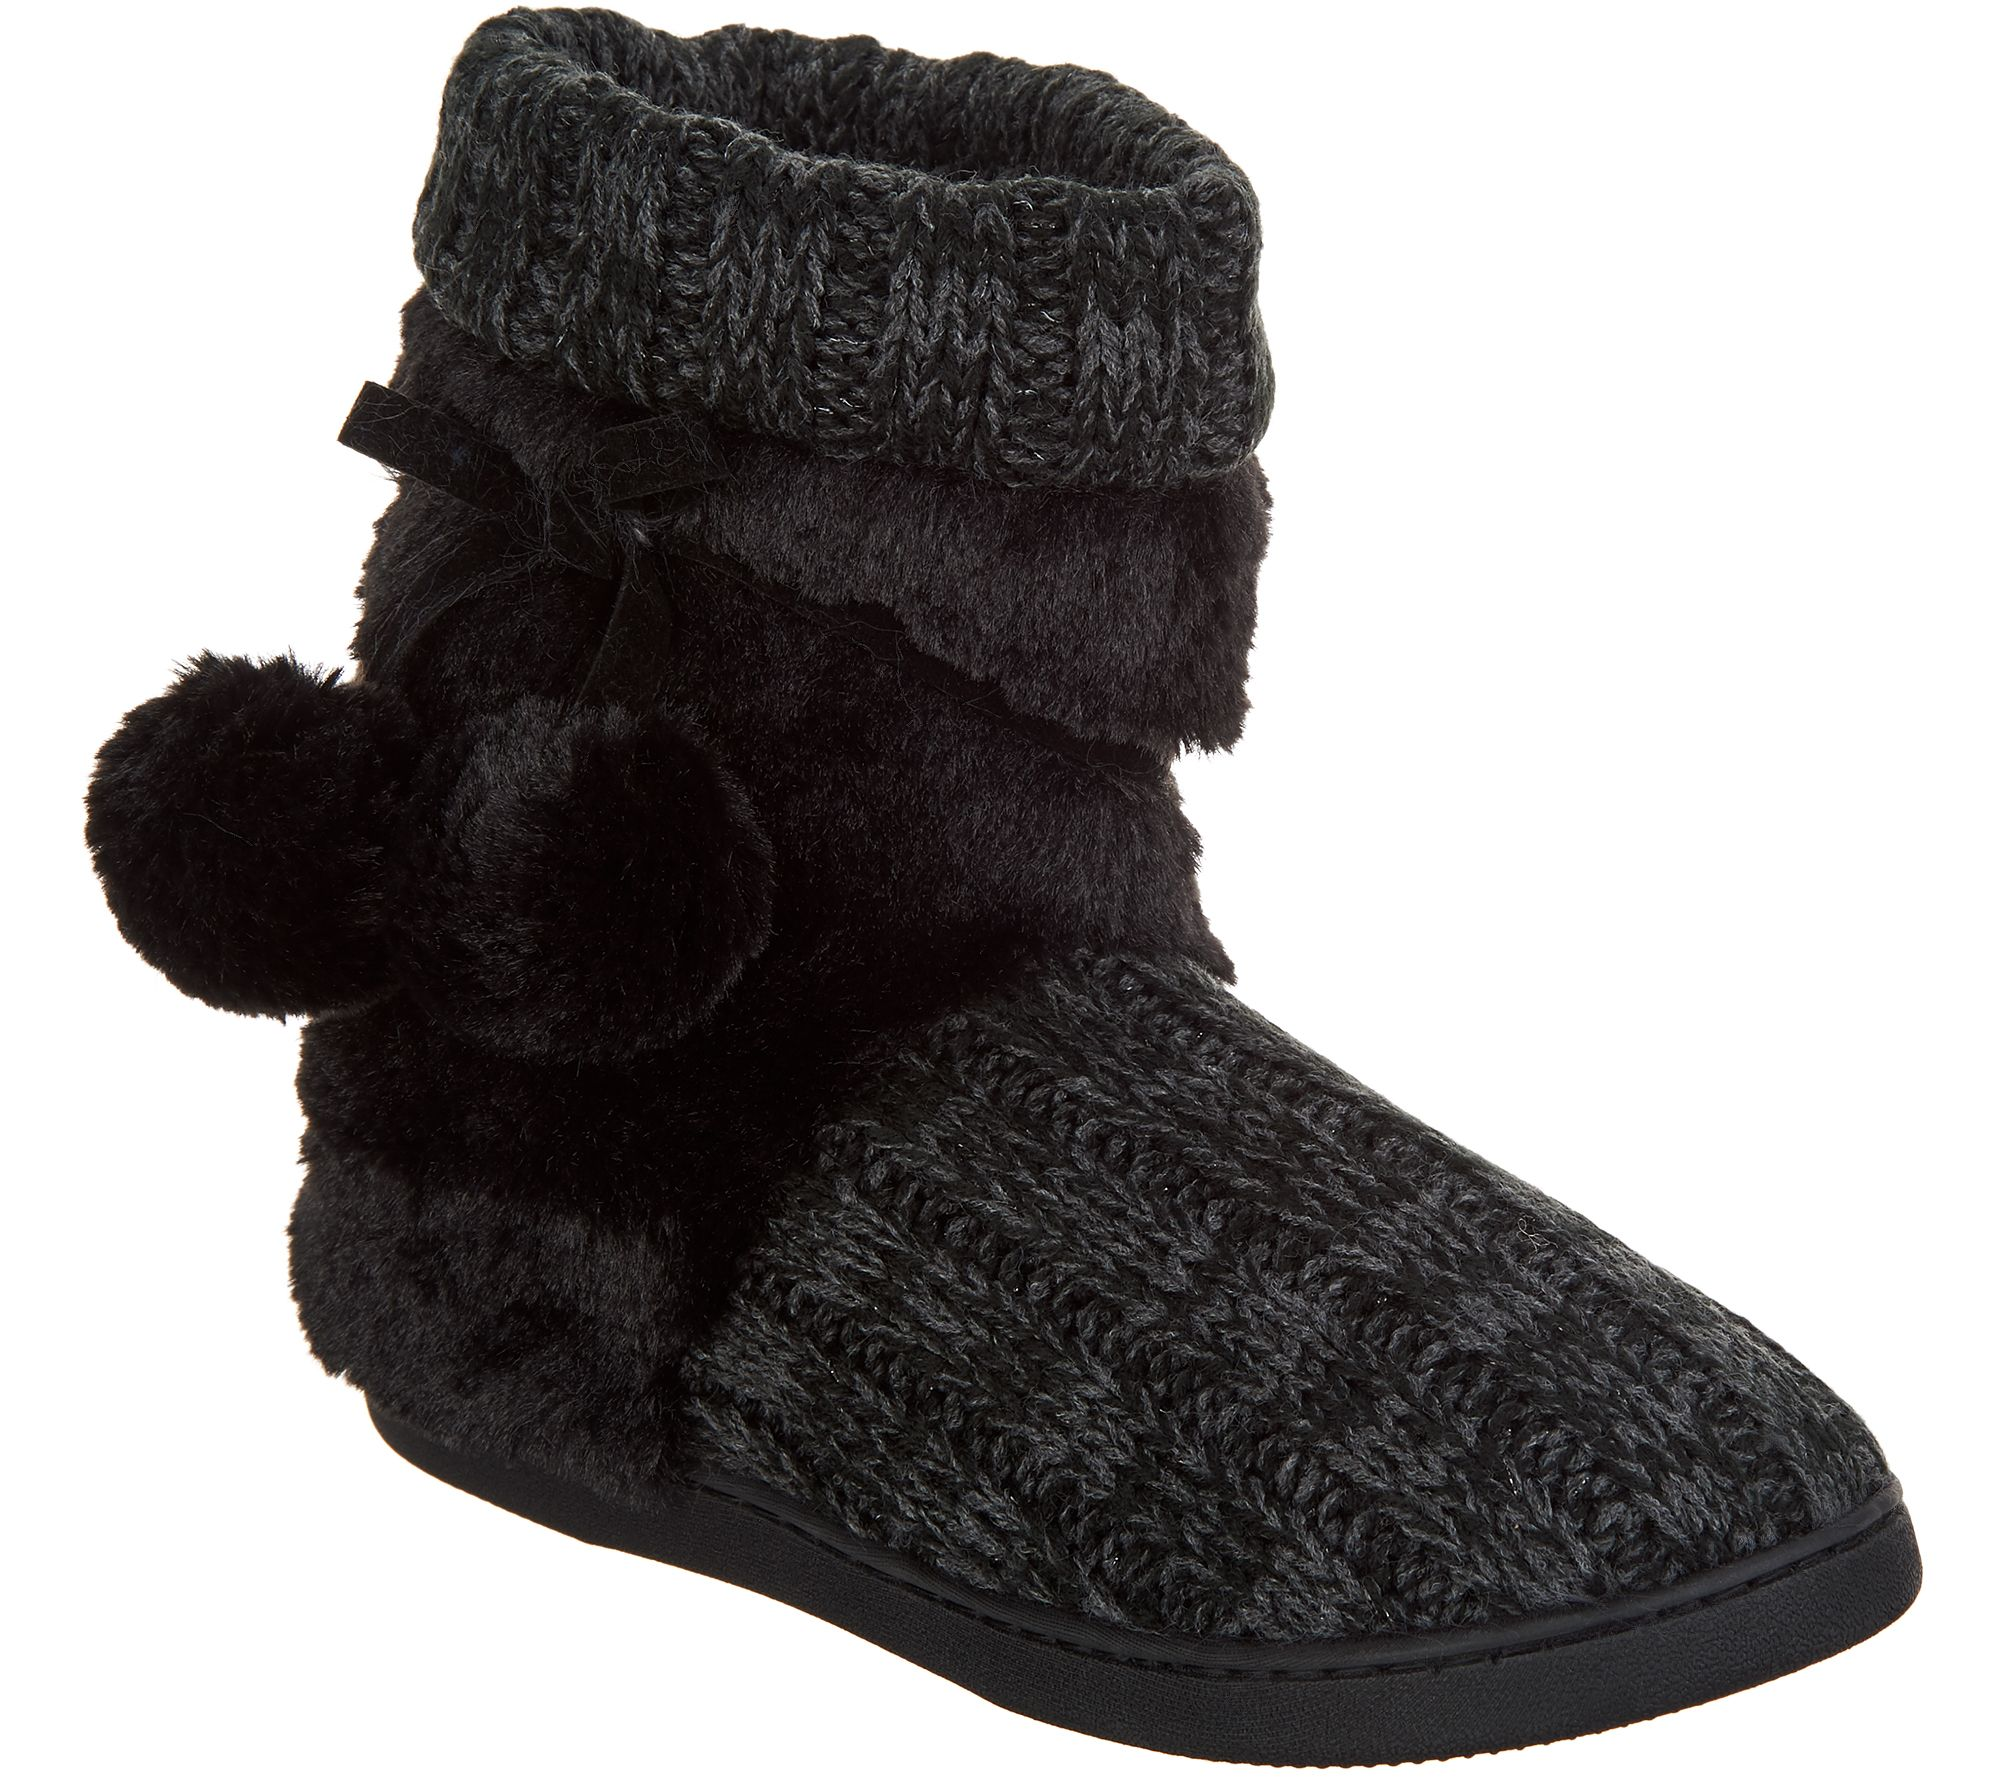 0d7a8ee70992 MUK LUKS Michelle Knit Slipper Boot with Faux Fur Lining - Page 1 — QVC.com